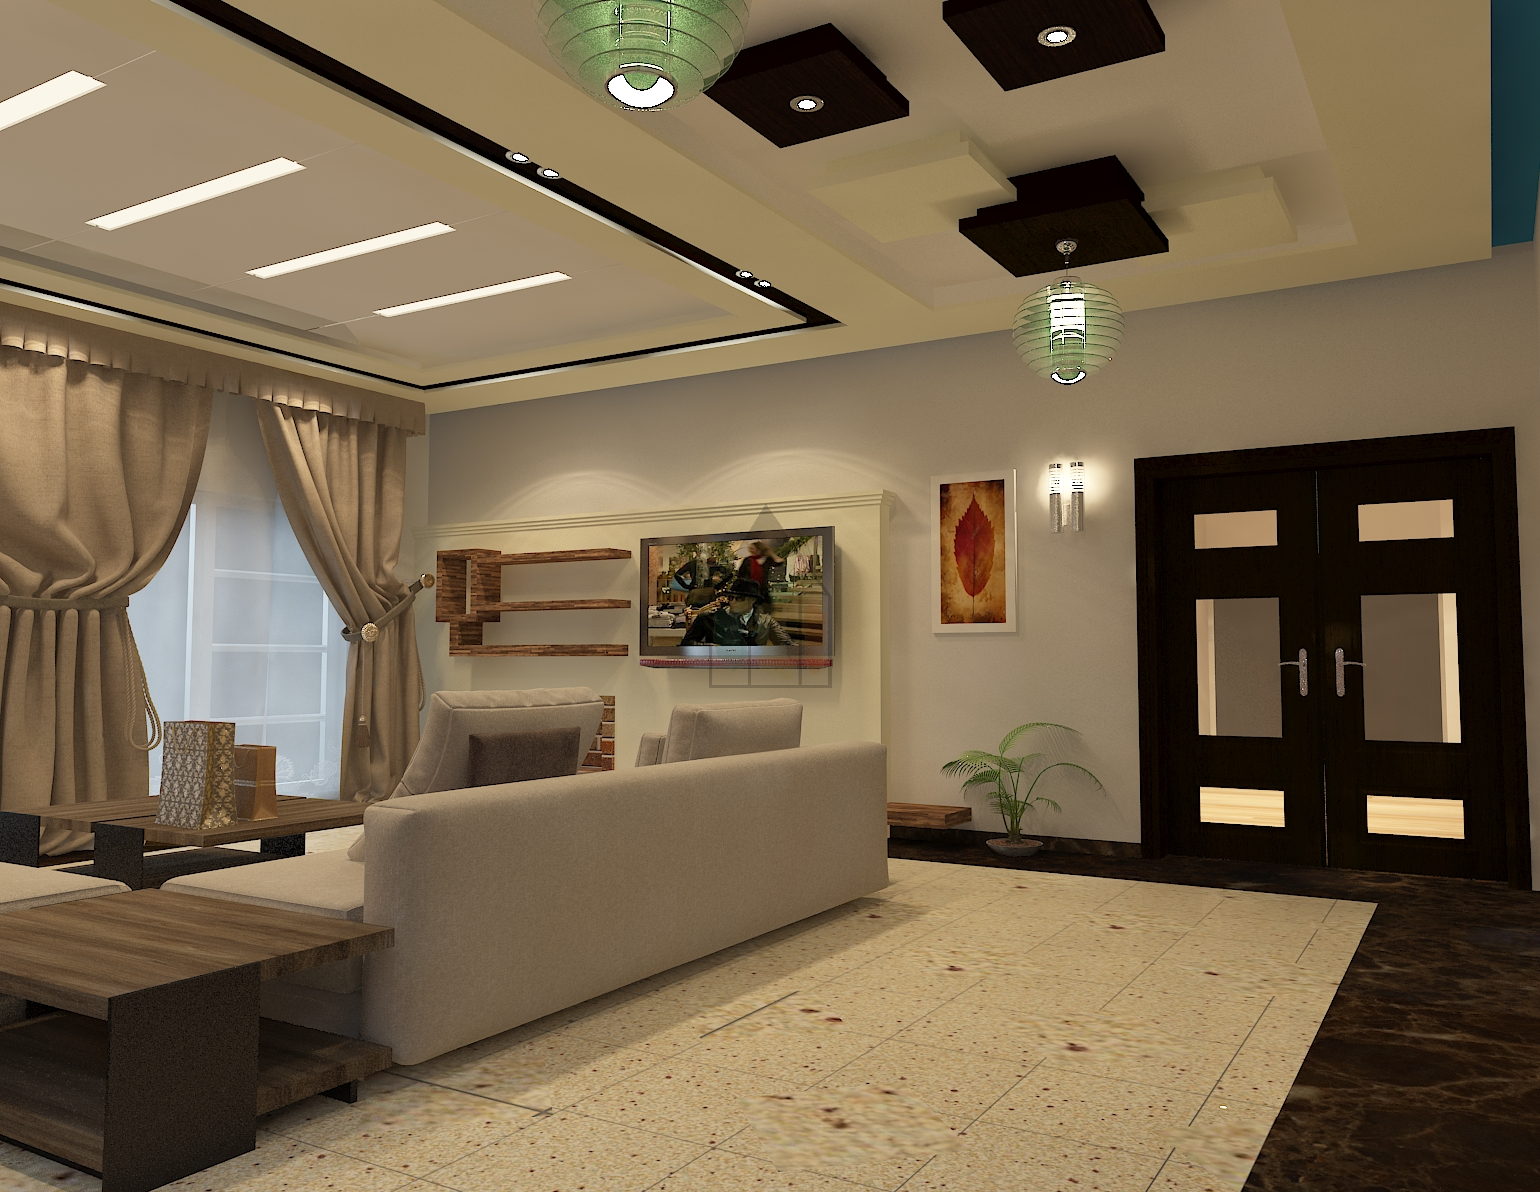 Tv lounge designs in pakistan from many other tv lounge for Bedroom ideas in pakistan